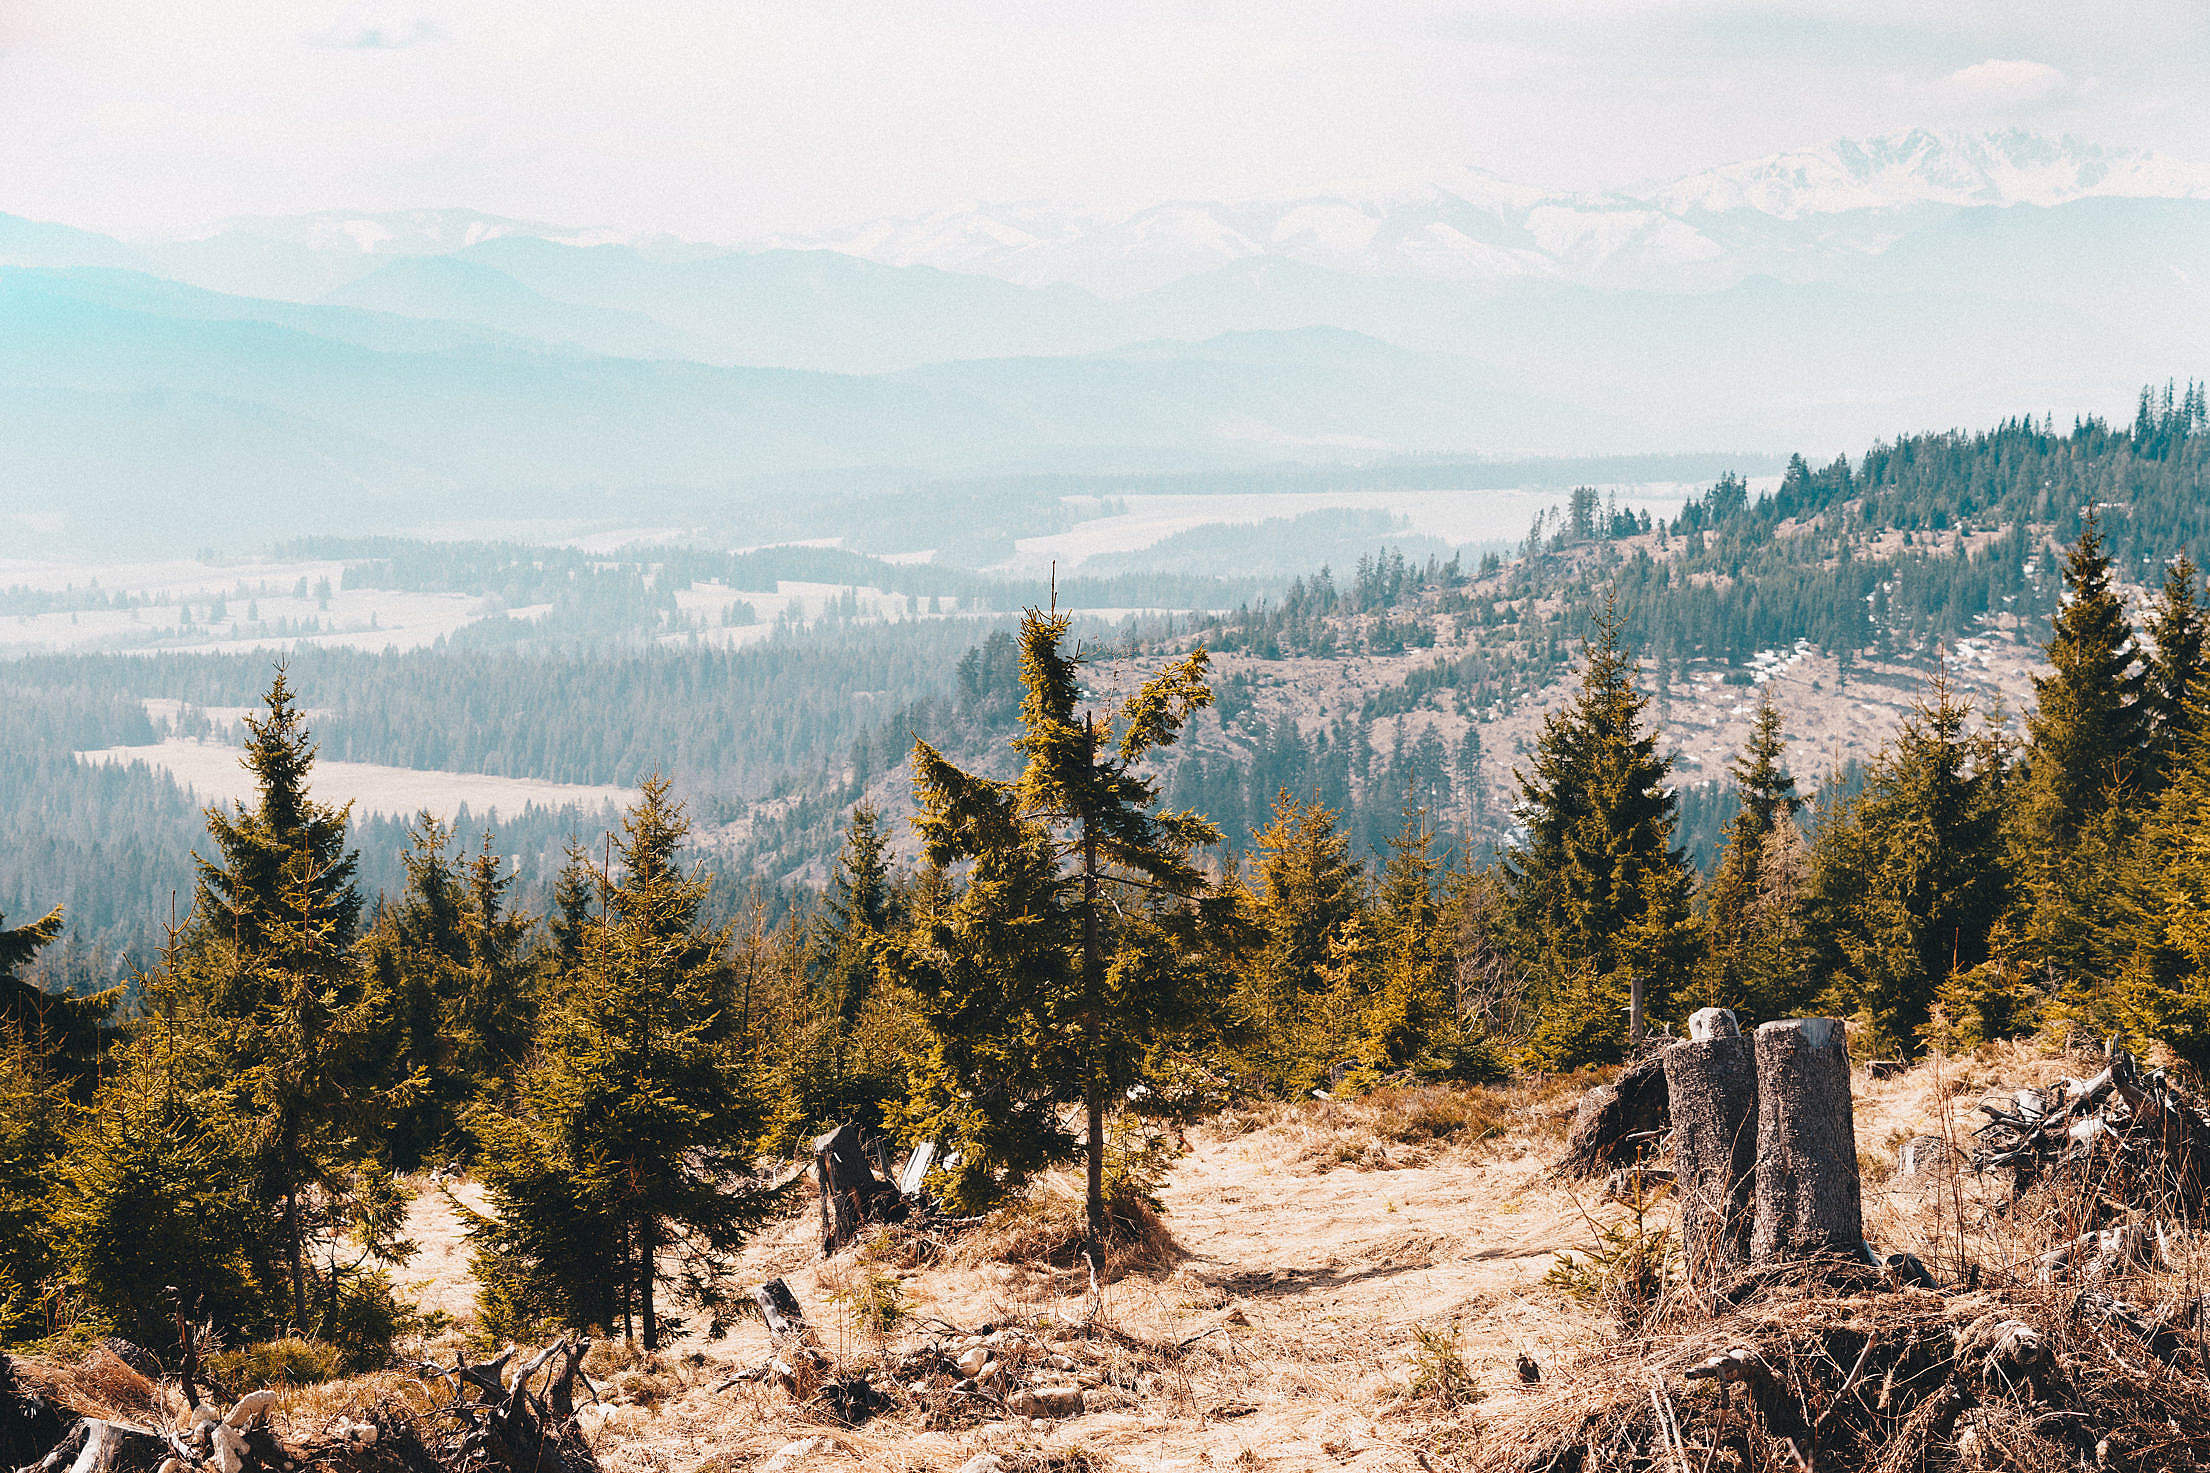 Trees in the Mountains Scenery Free Stock Photo